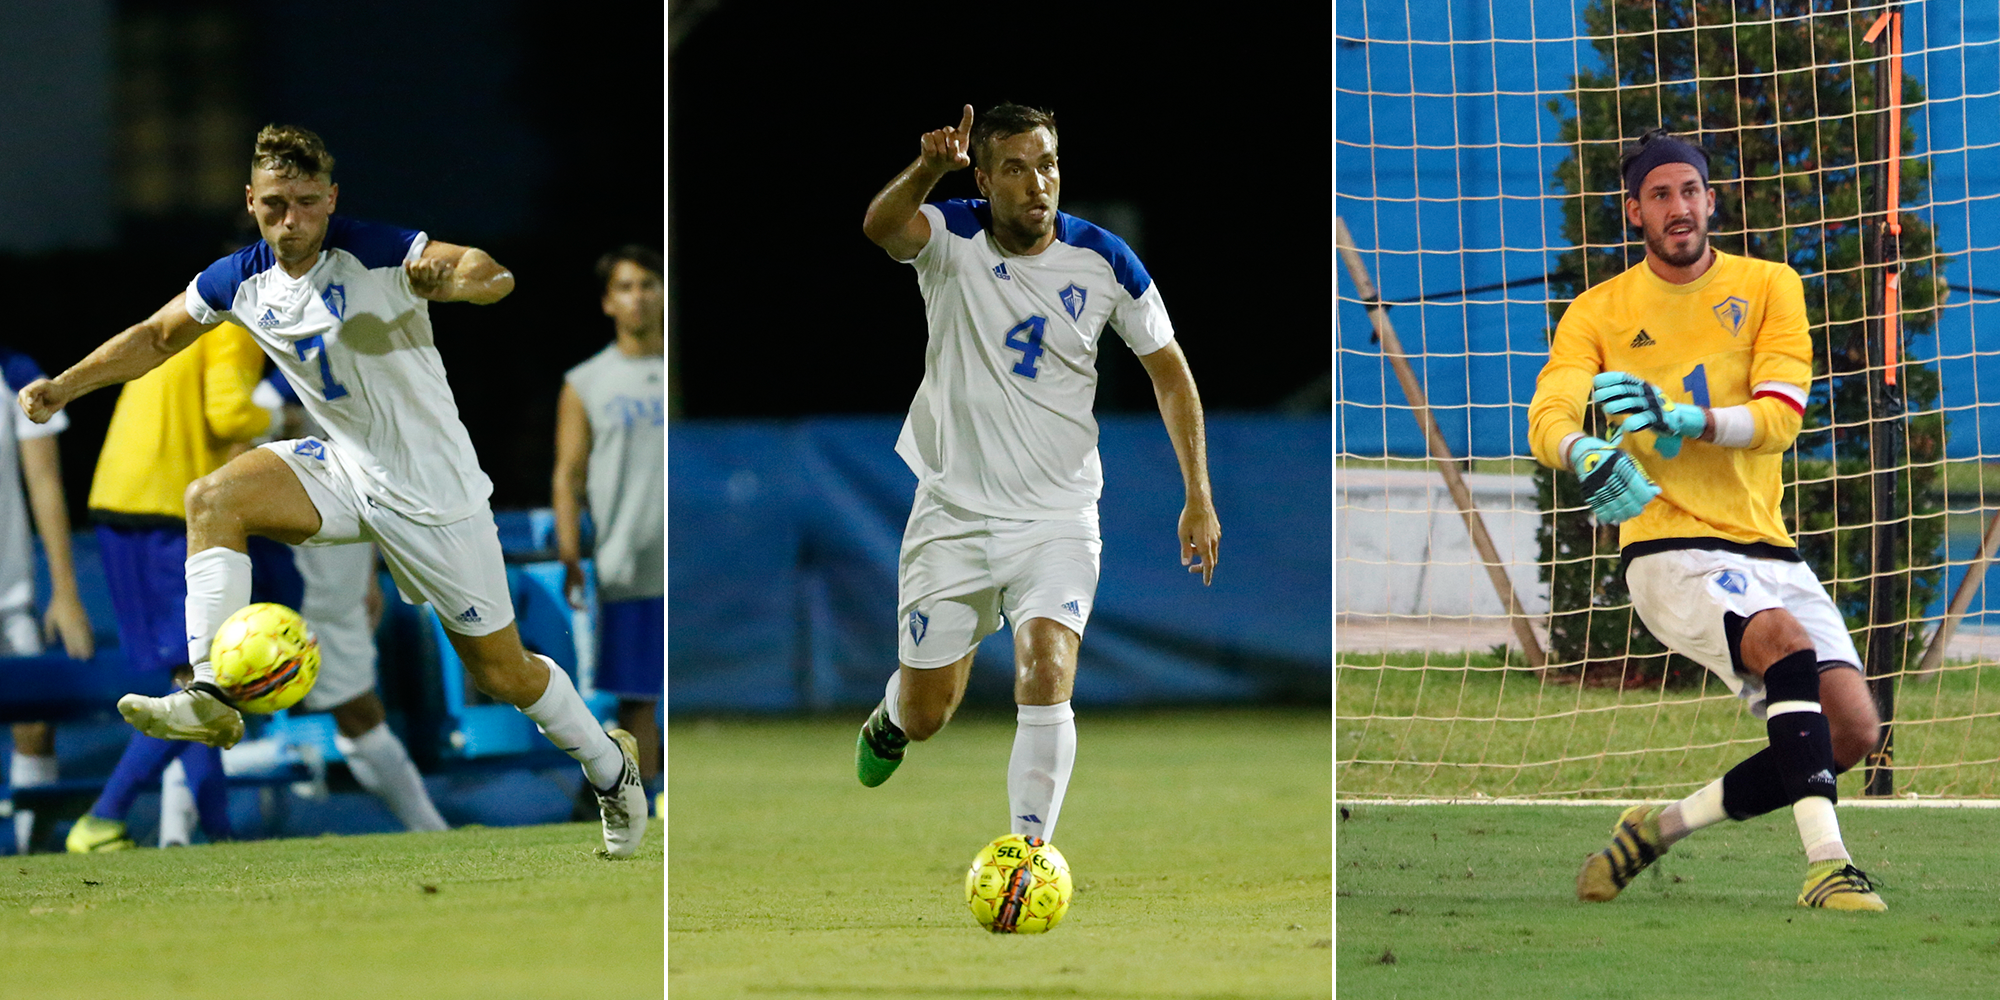 Tasky, Webb Highlight D2CCA All-South Region Men's Soccer Honorees